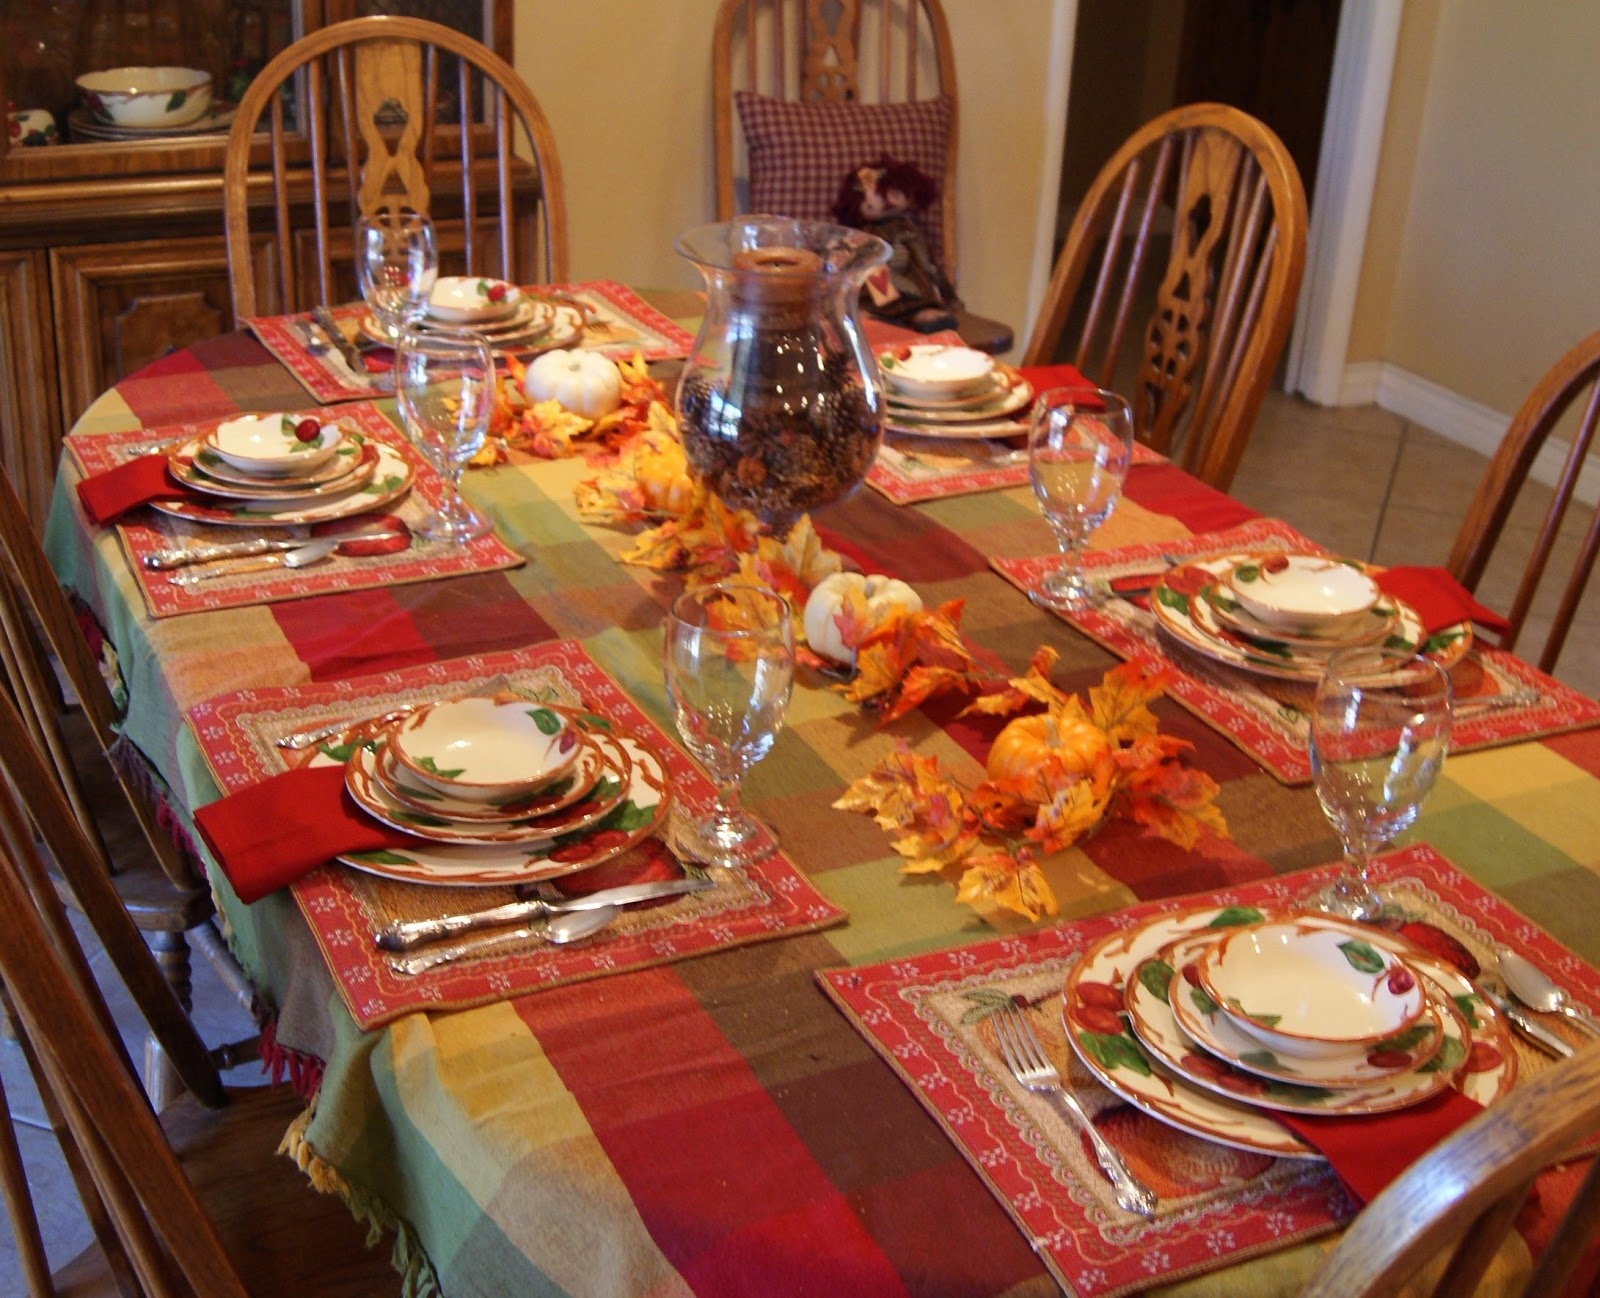 Puddle jumper creations my thanksgiving table How to set a thanksgiving dinner table